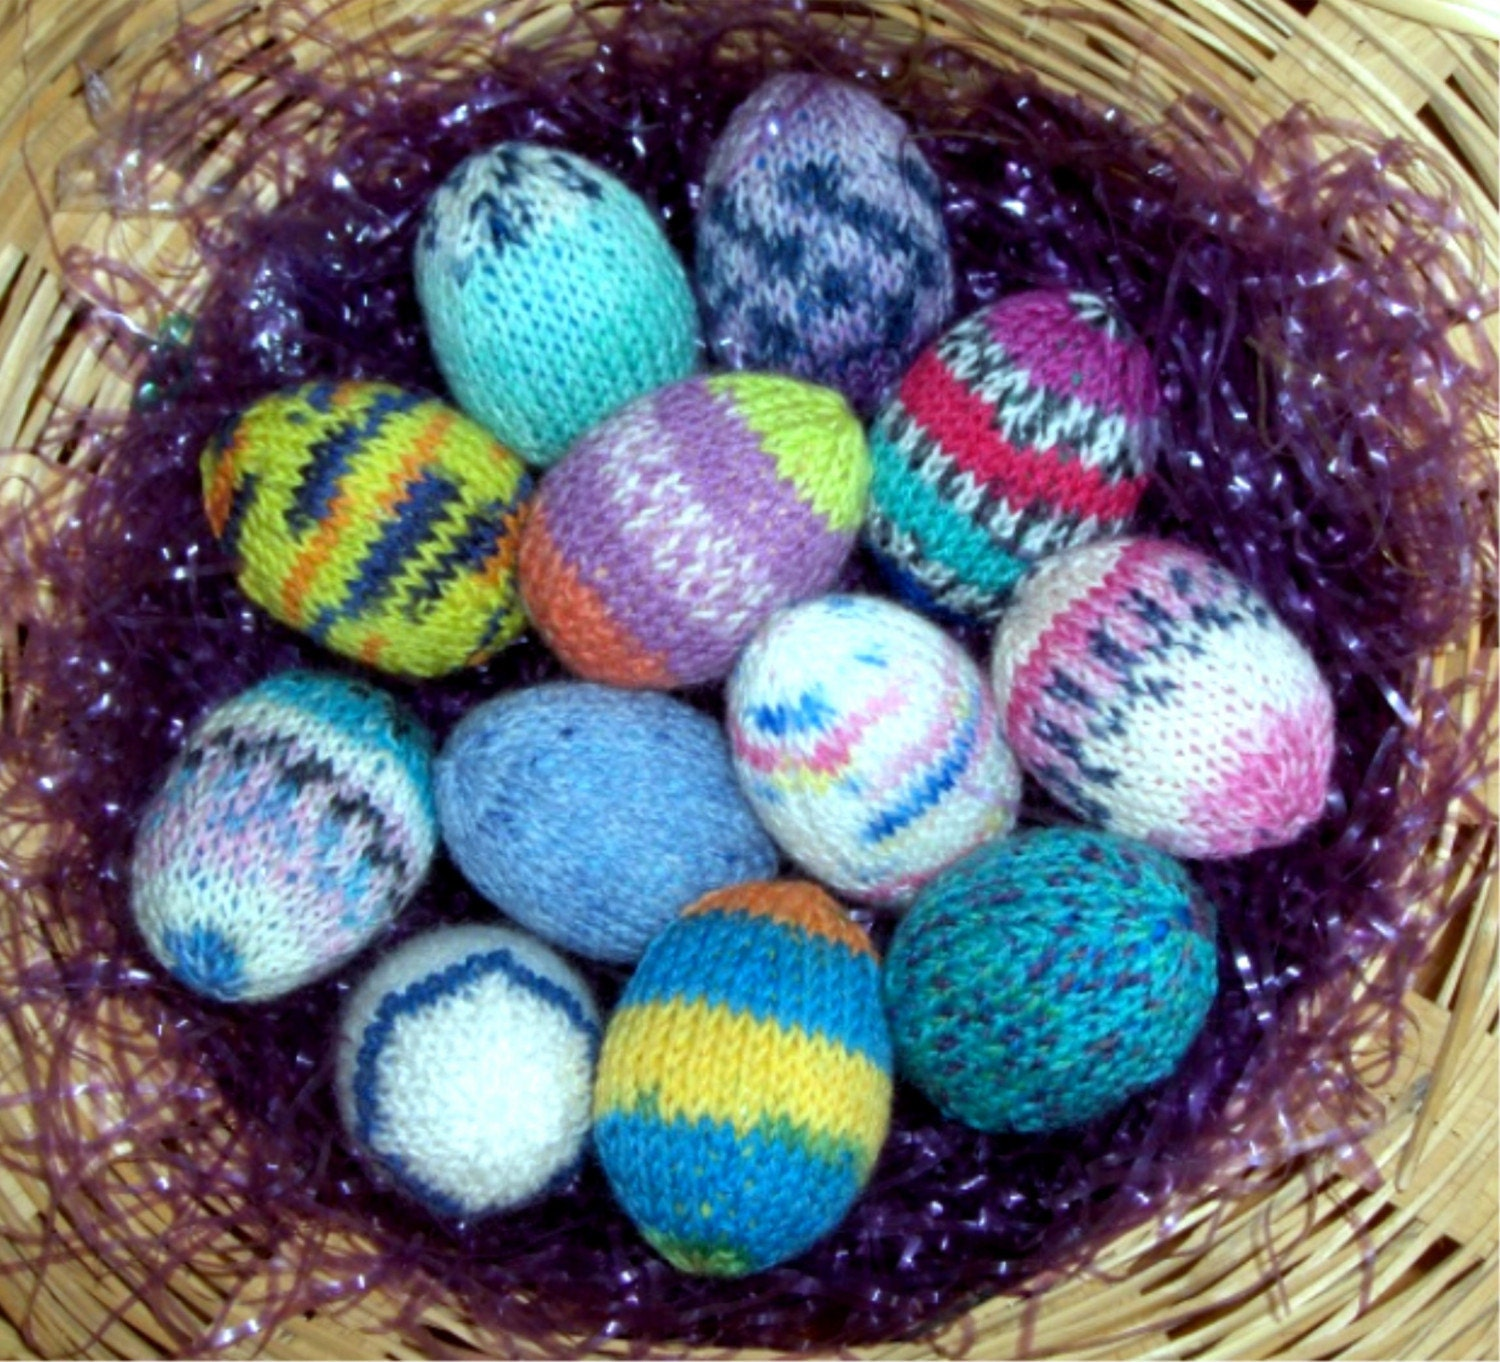 Knitting Easter Eggs : Knitted sock yarn easter egg pattern by mamabakalama on etsy